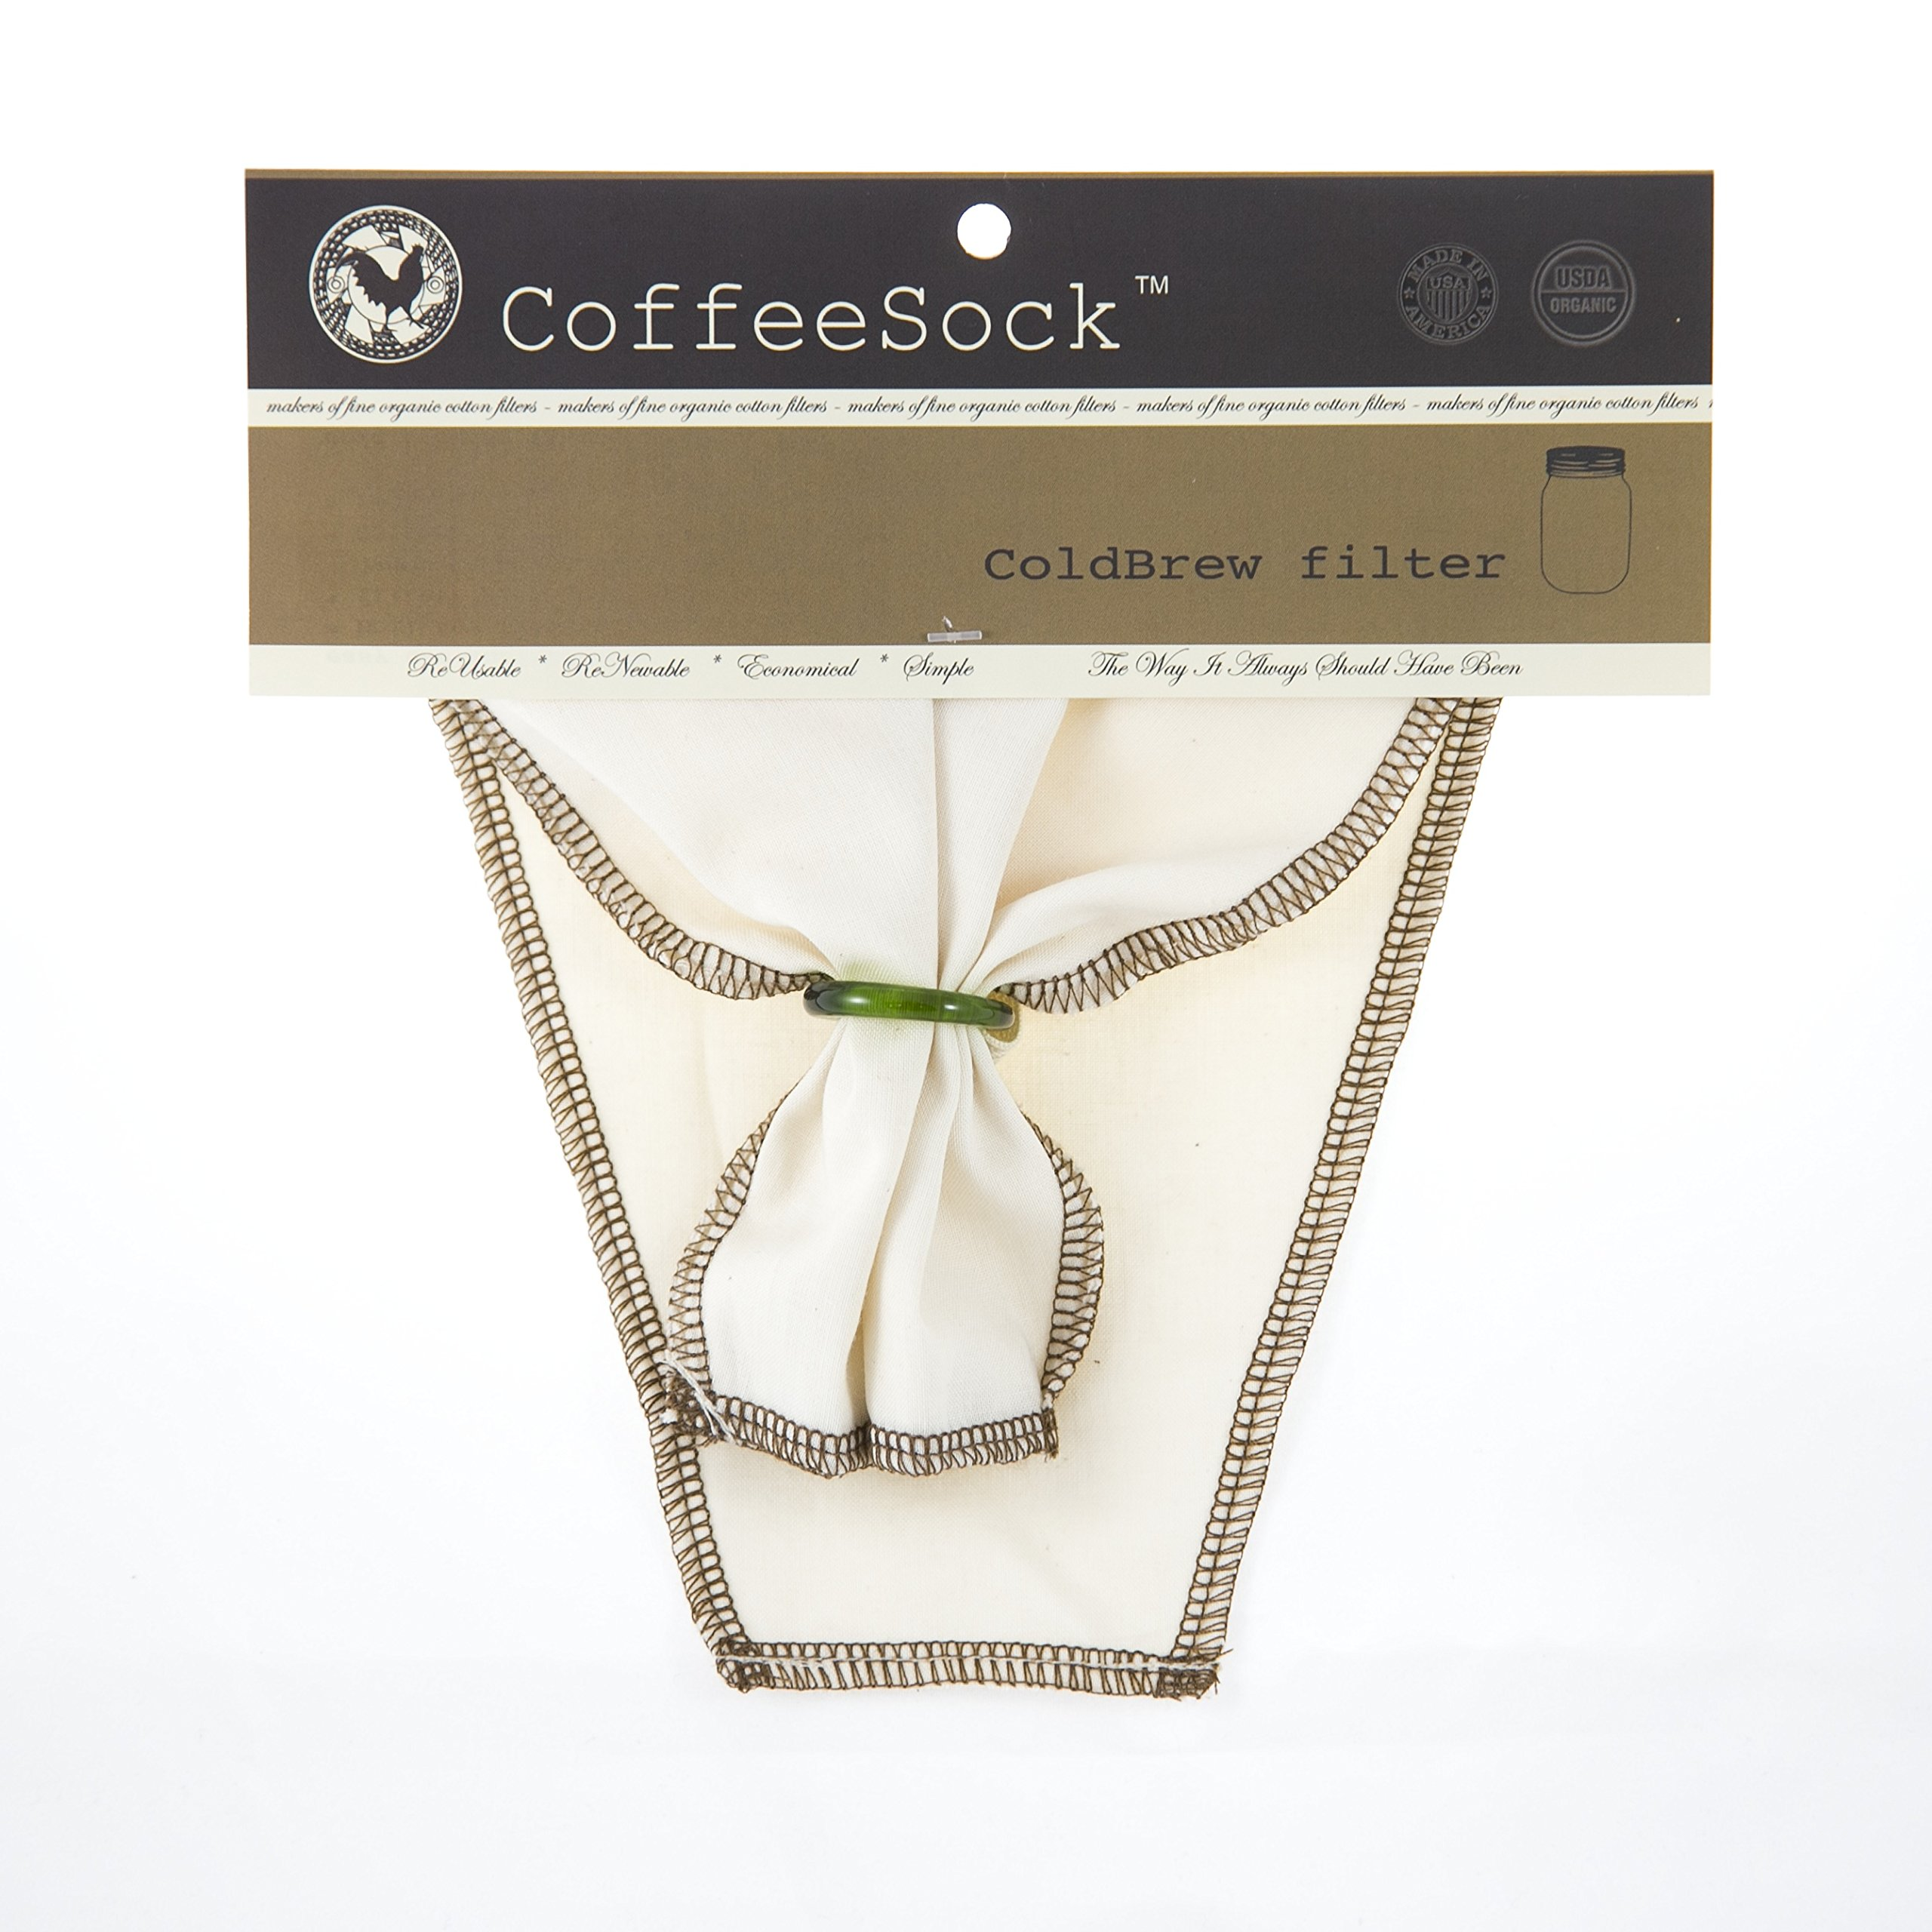 CoffeeSock ColdBrew Filter - GOTS Certified Organic Cotton Reusable Coffee Filter (TWO GALLON)